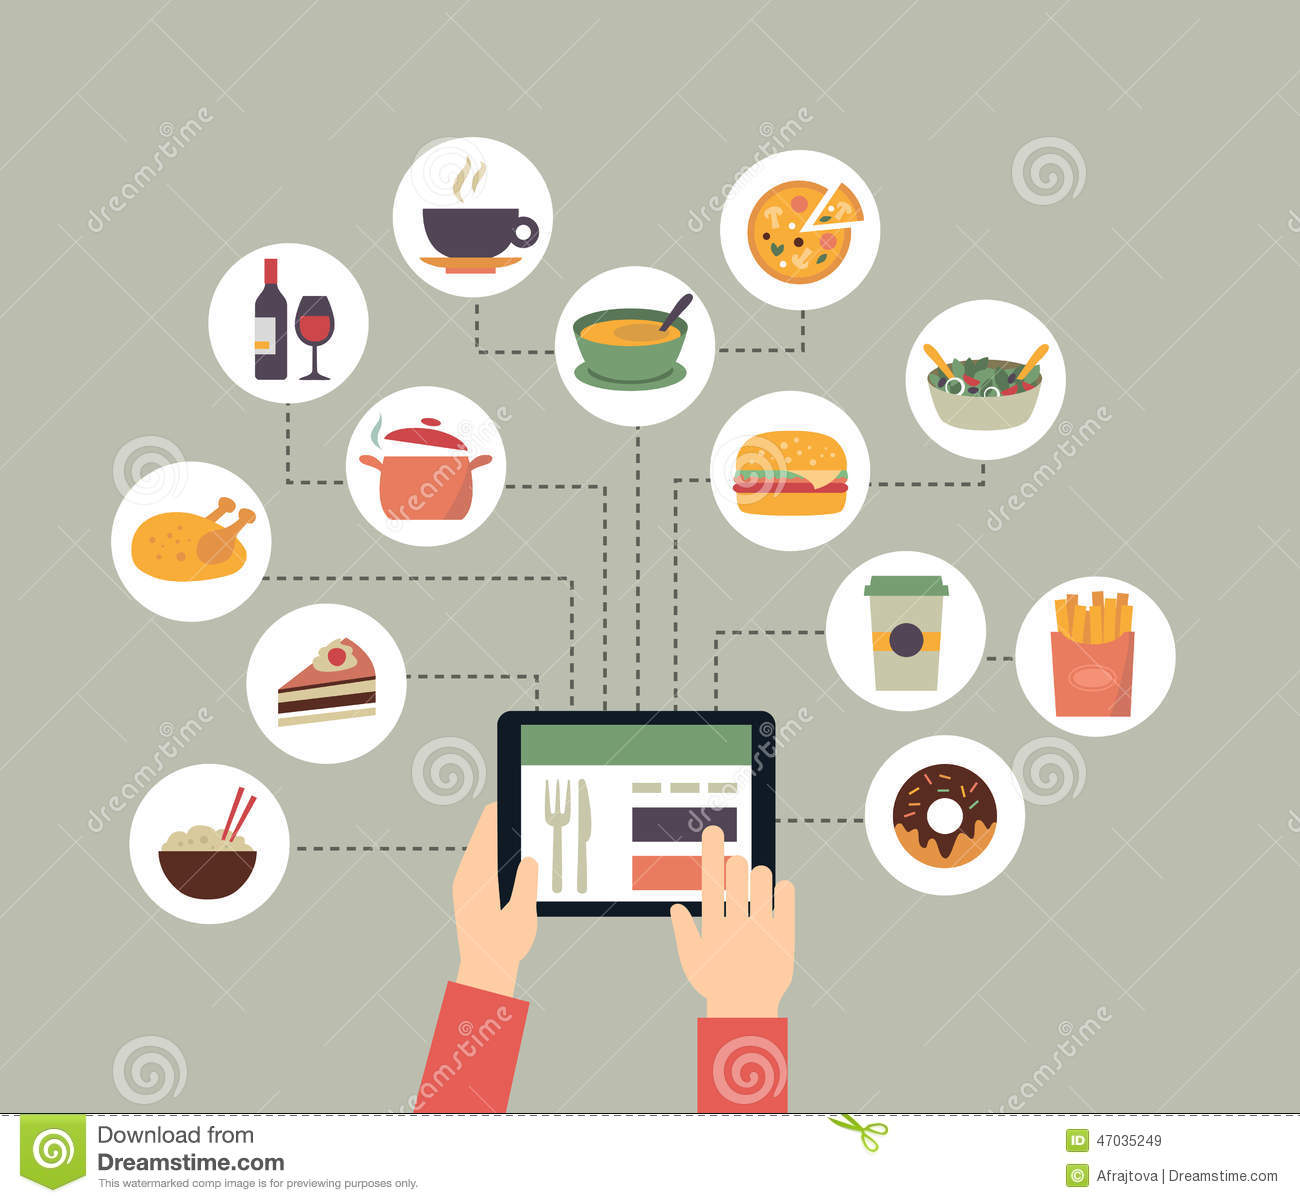 Ordering food online stock vector illustration of media 47035249 ordering food online forumfinder